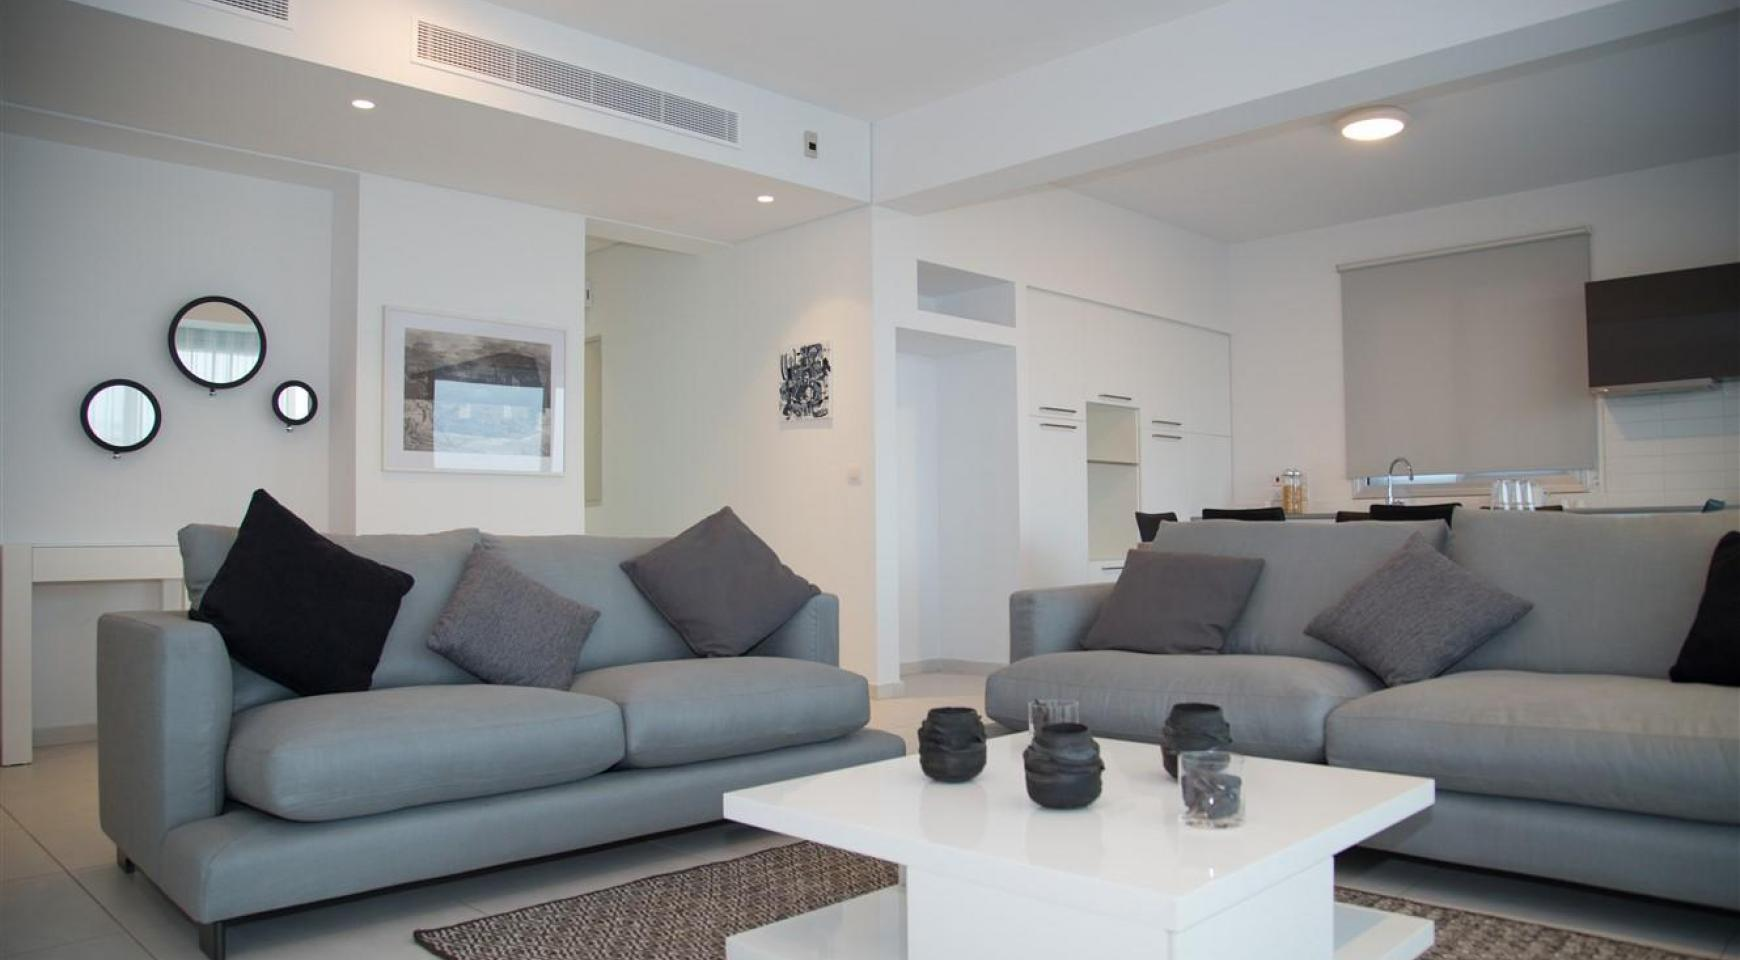 Spacious Luxury 3 Bedroom Apartment in a New Complex - 20